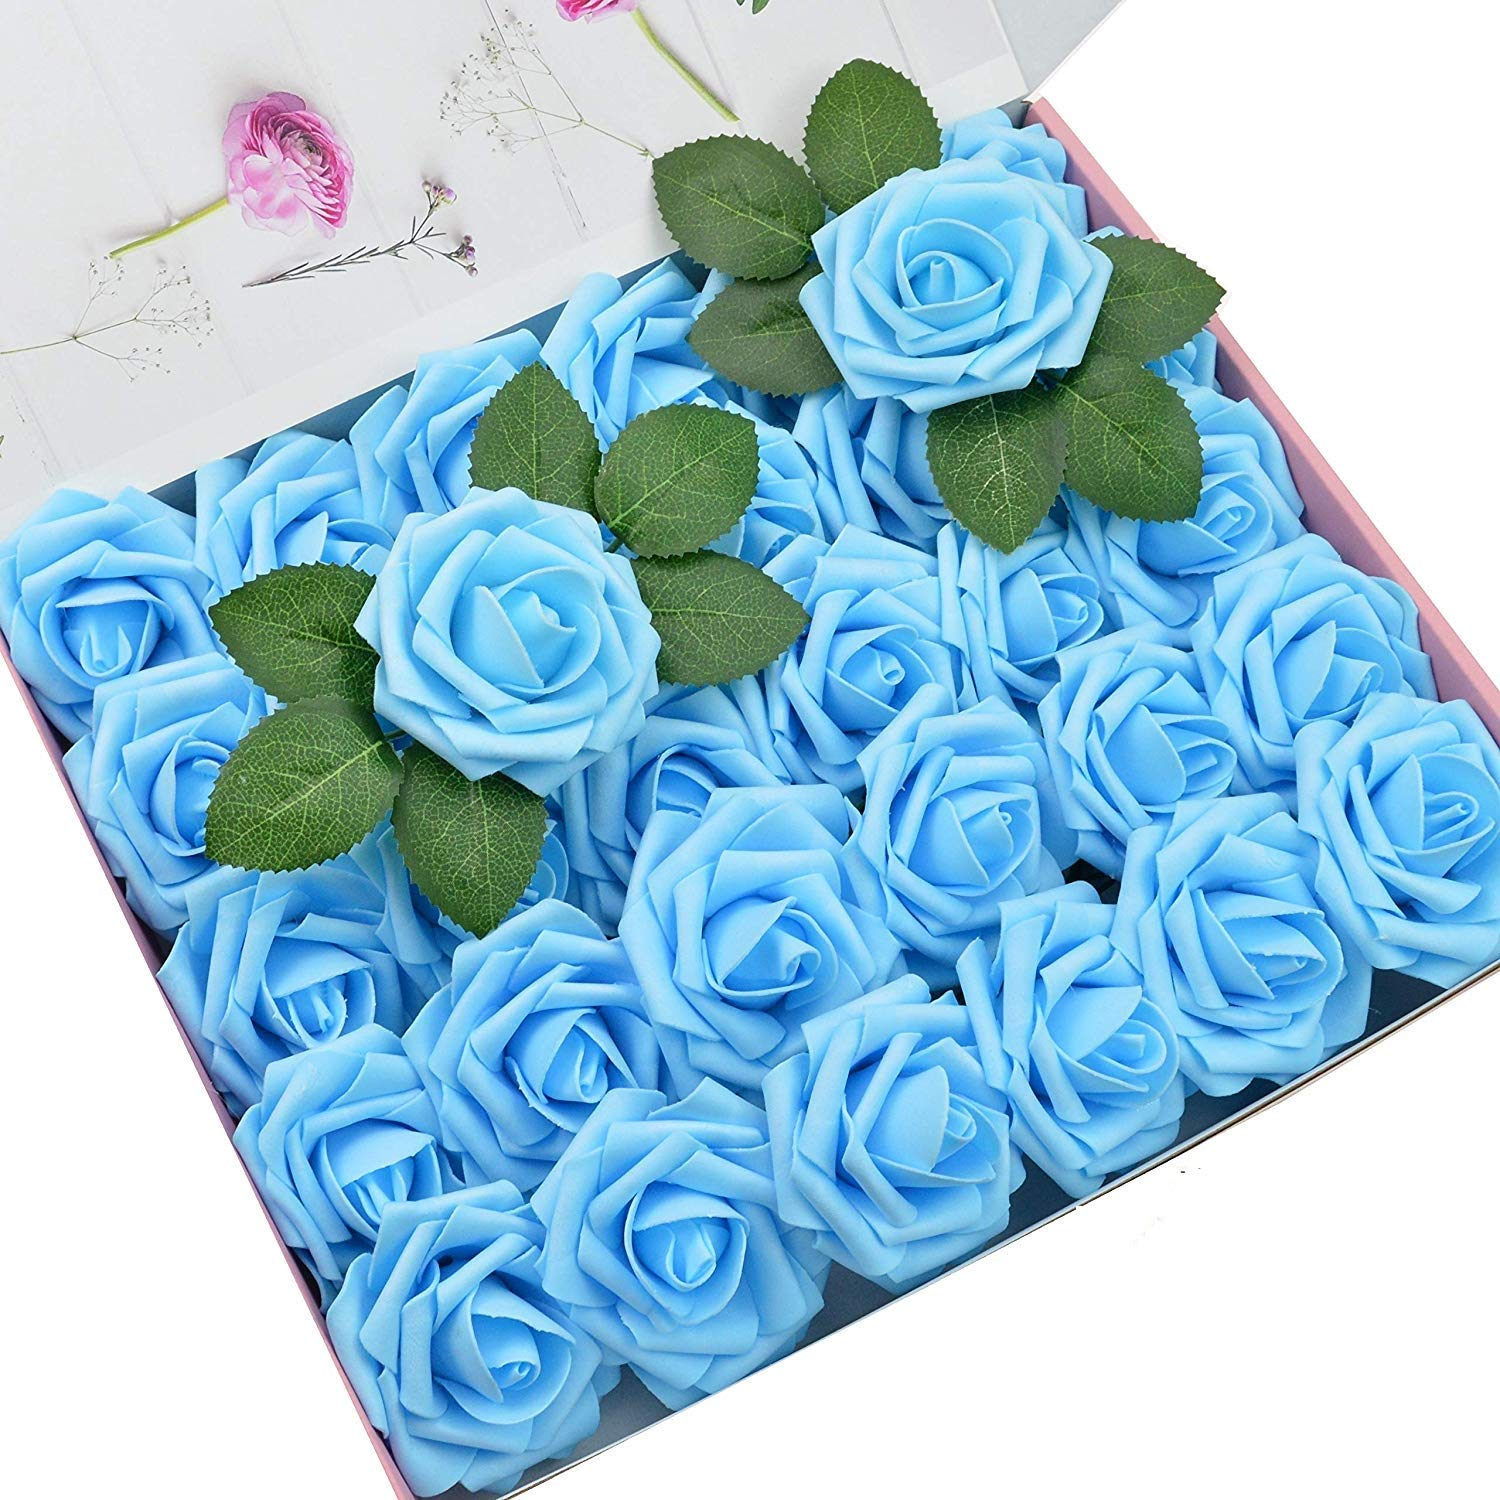 DerBlue 60pcs Artificial Roses Flowers Real Looking Fake Roses Roses Decoration DIY for Wedding Bouquets,Arrangements Party Baby Shower Home Decorations